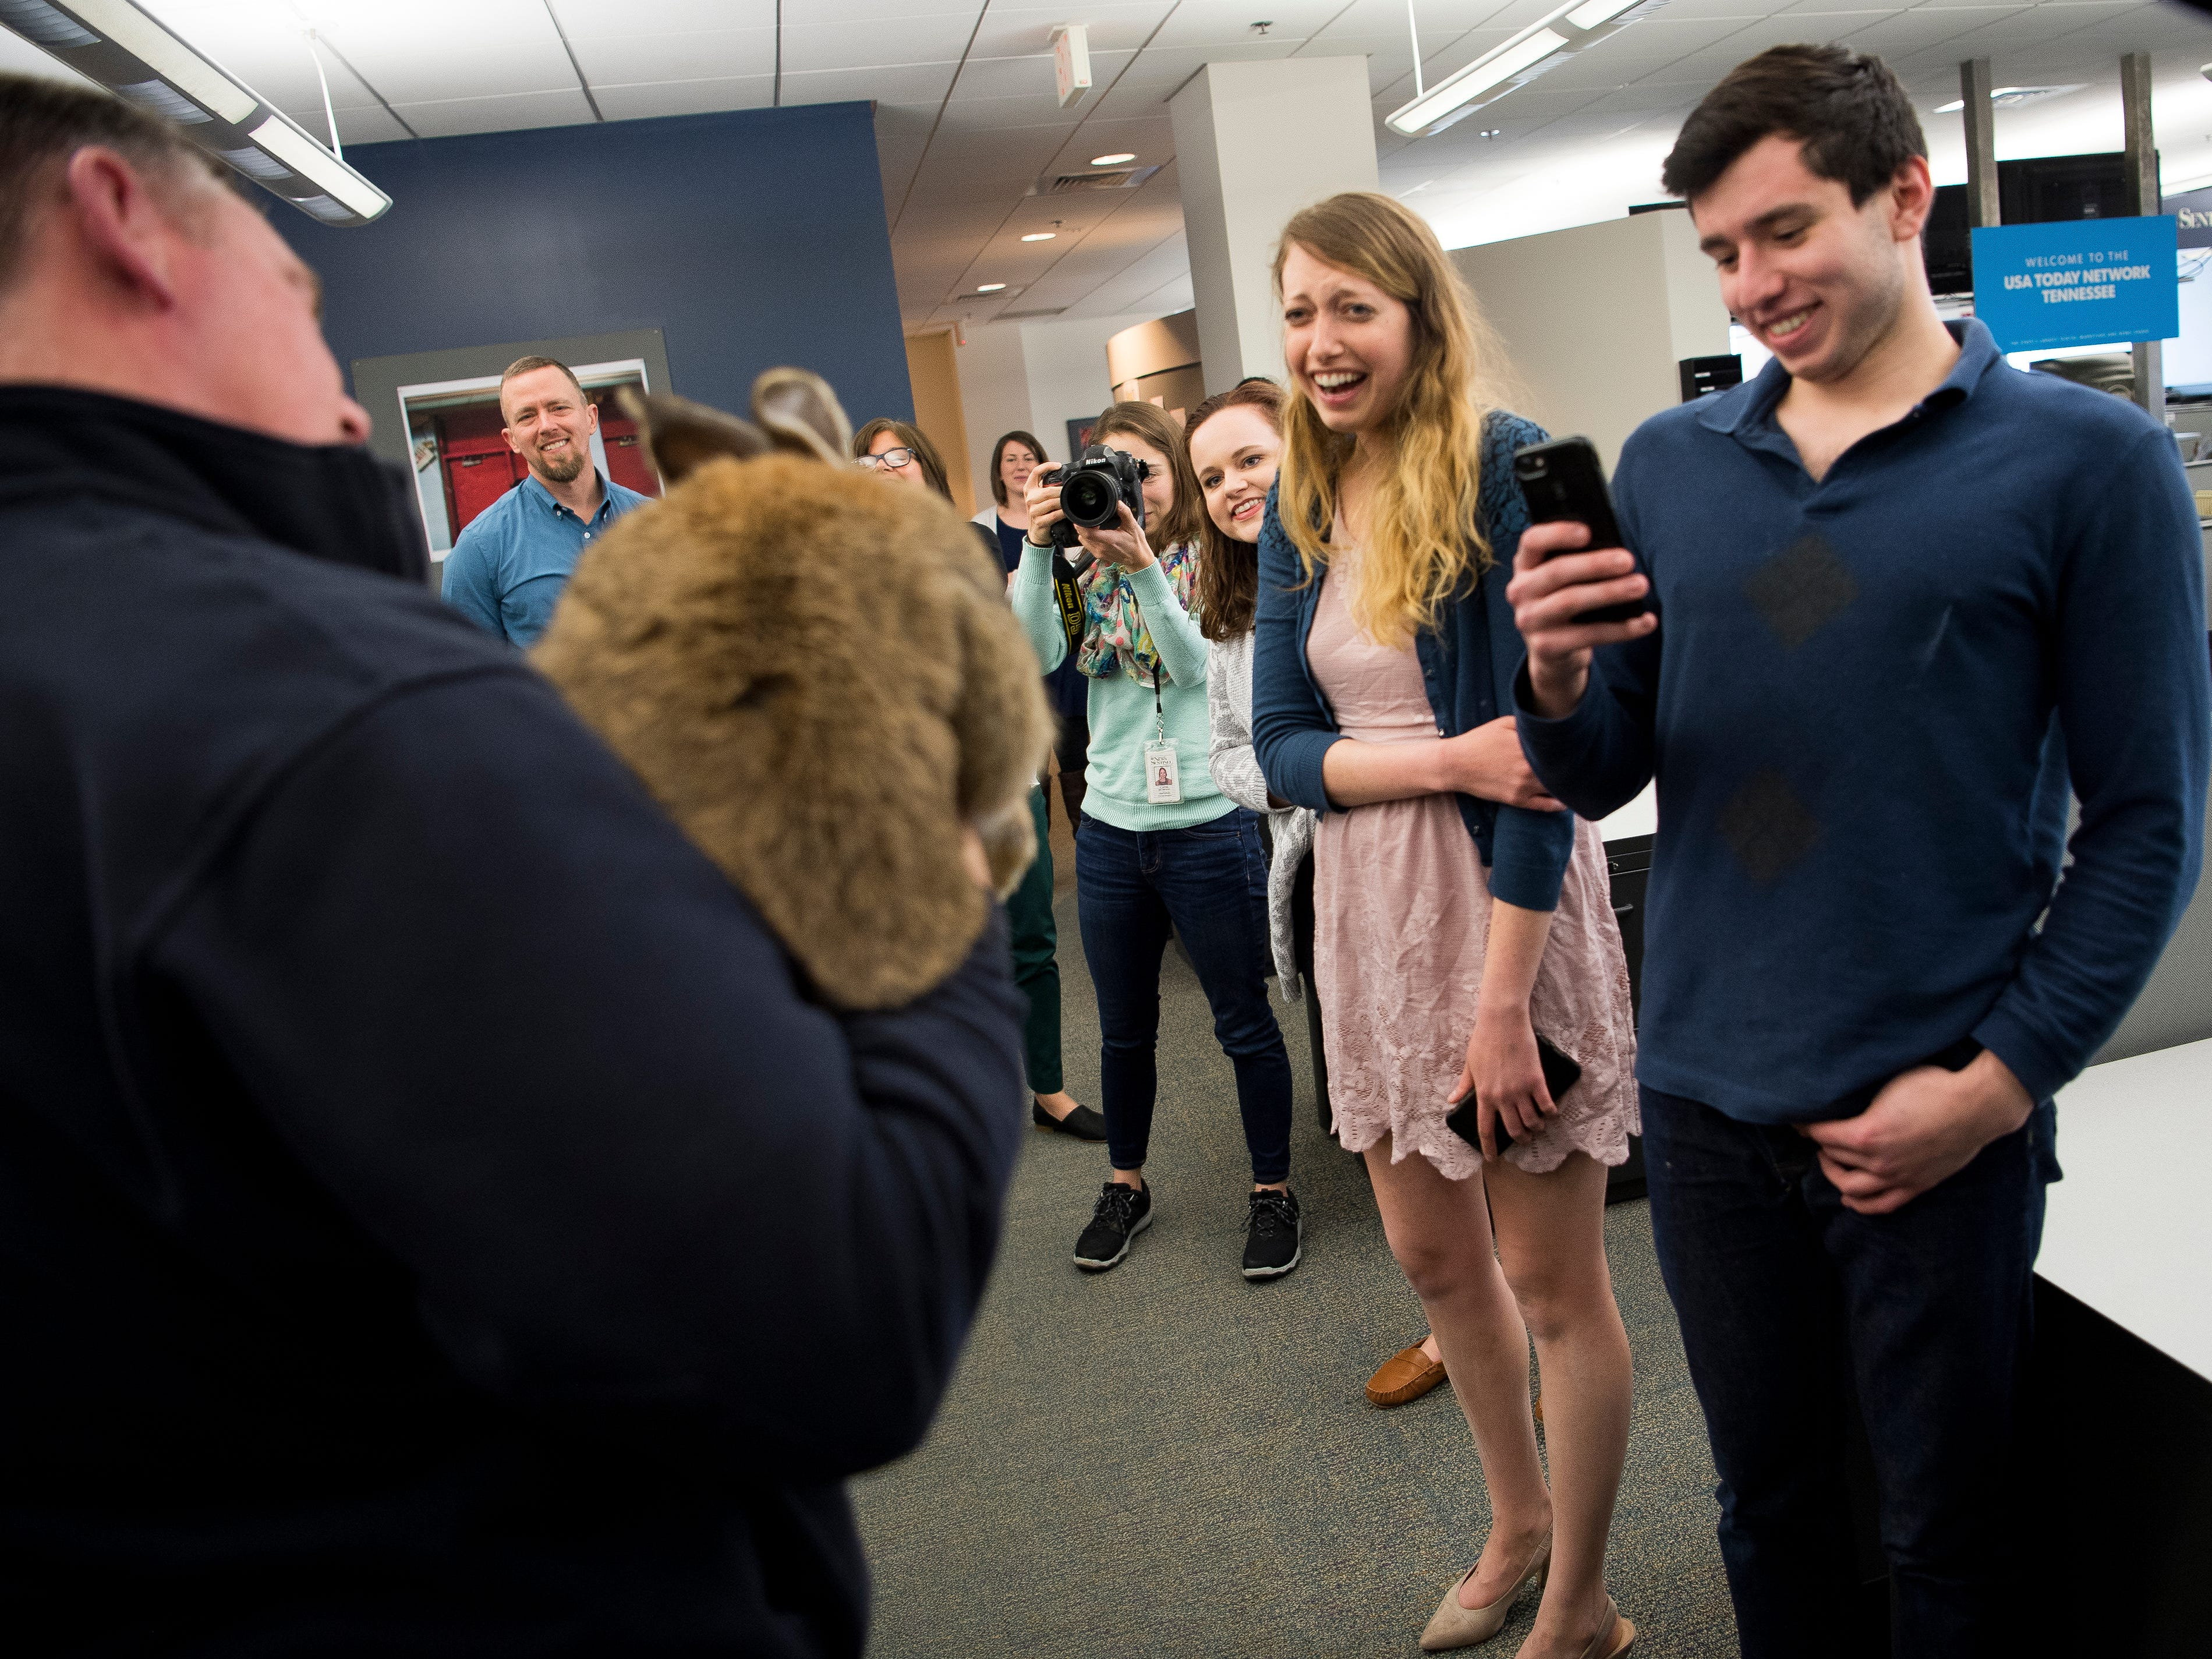 News Sentinel reporters react as the Corcoran family brings their giant pet rabbit Barley to the News Sentinel newsroom on Thursday, January 31, 2019. Barley is a Flemish Giant, considered the largest breed of rabbit in the world.